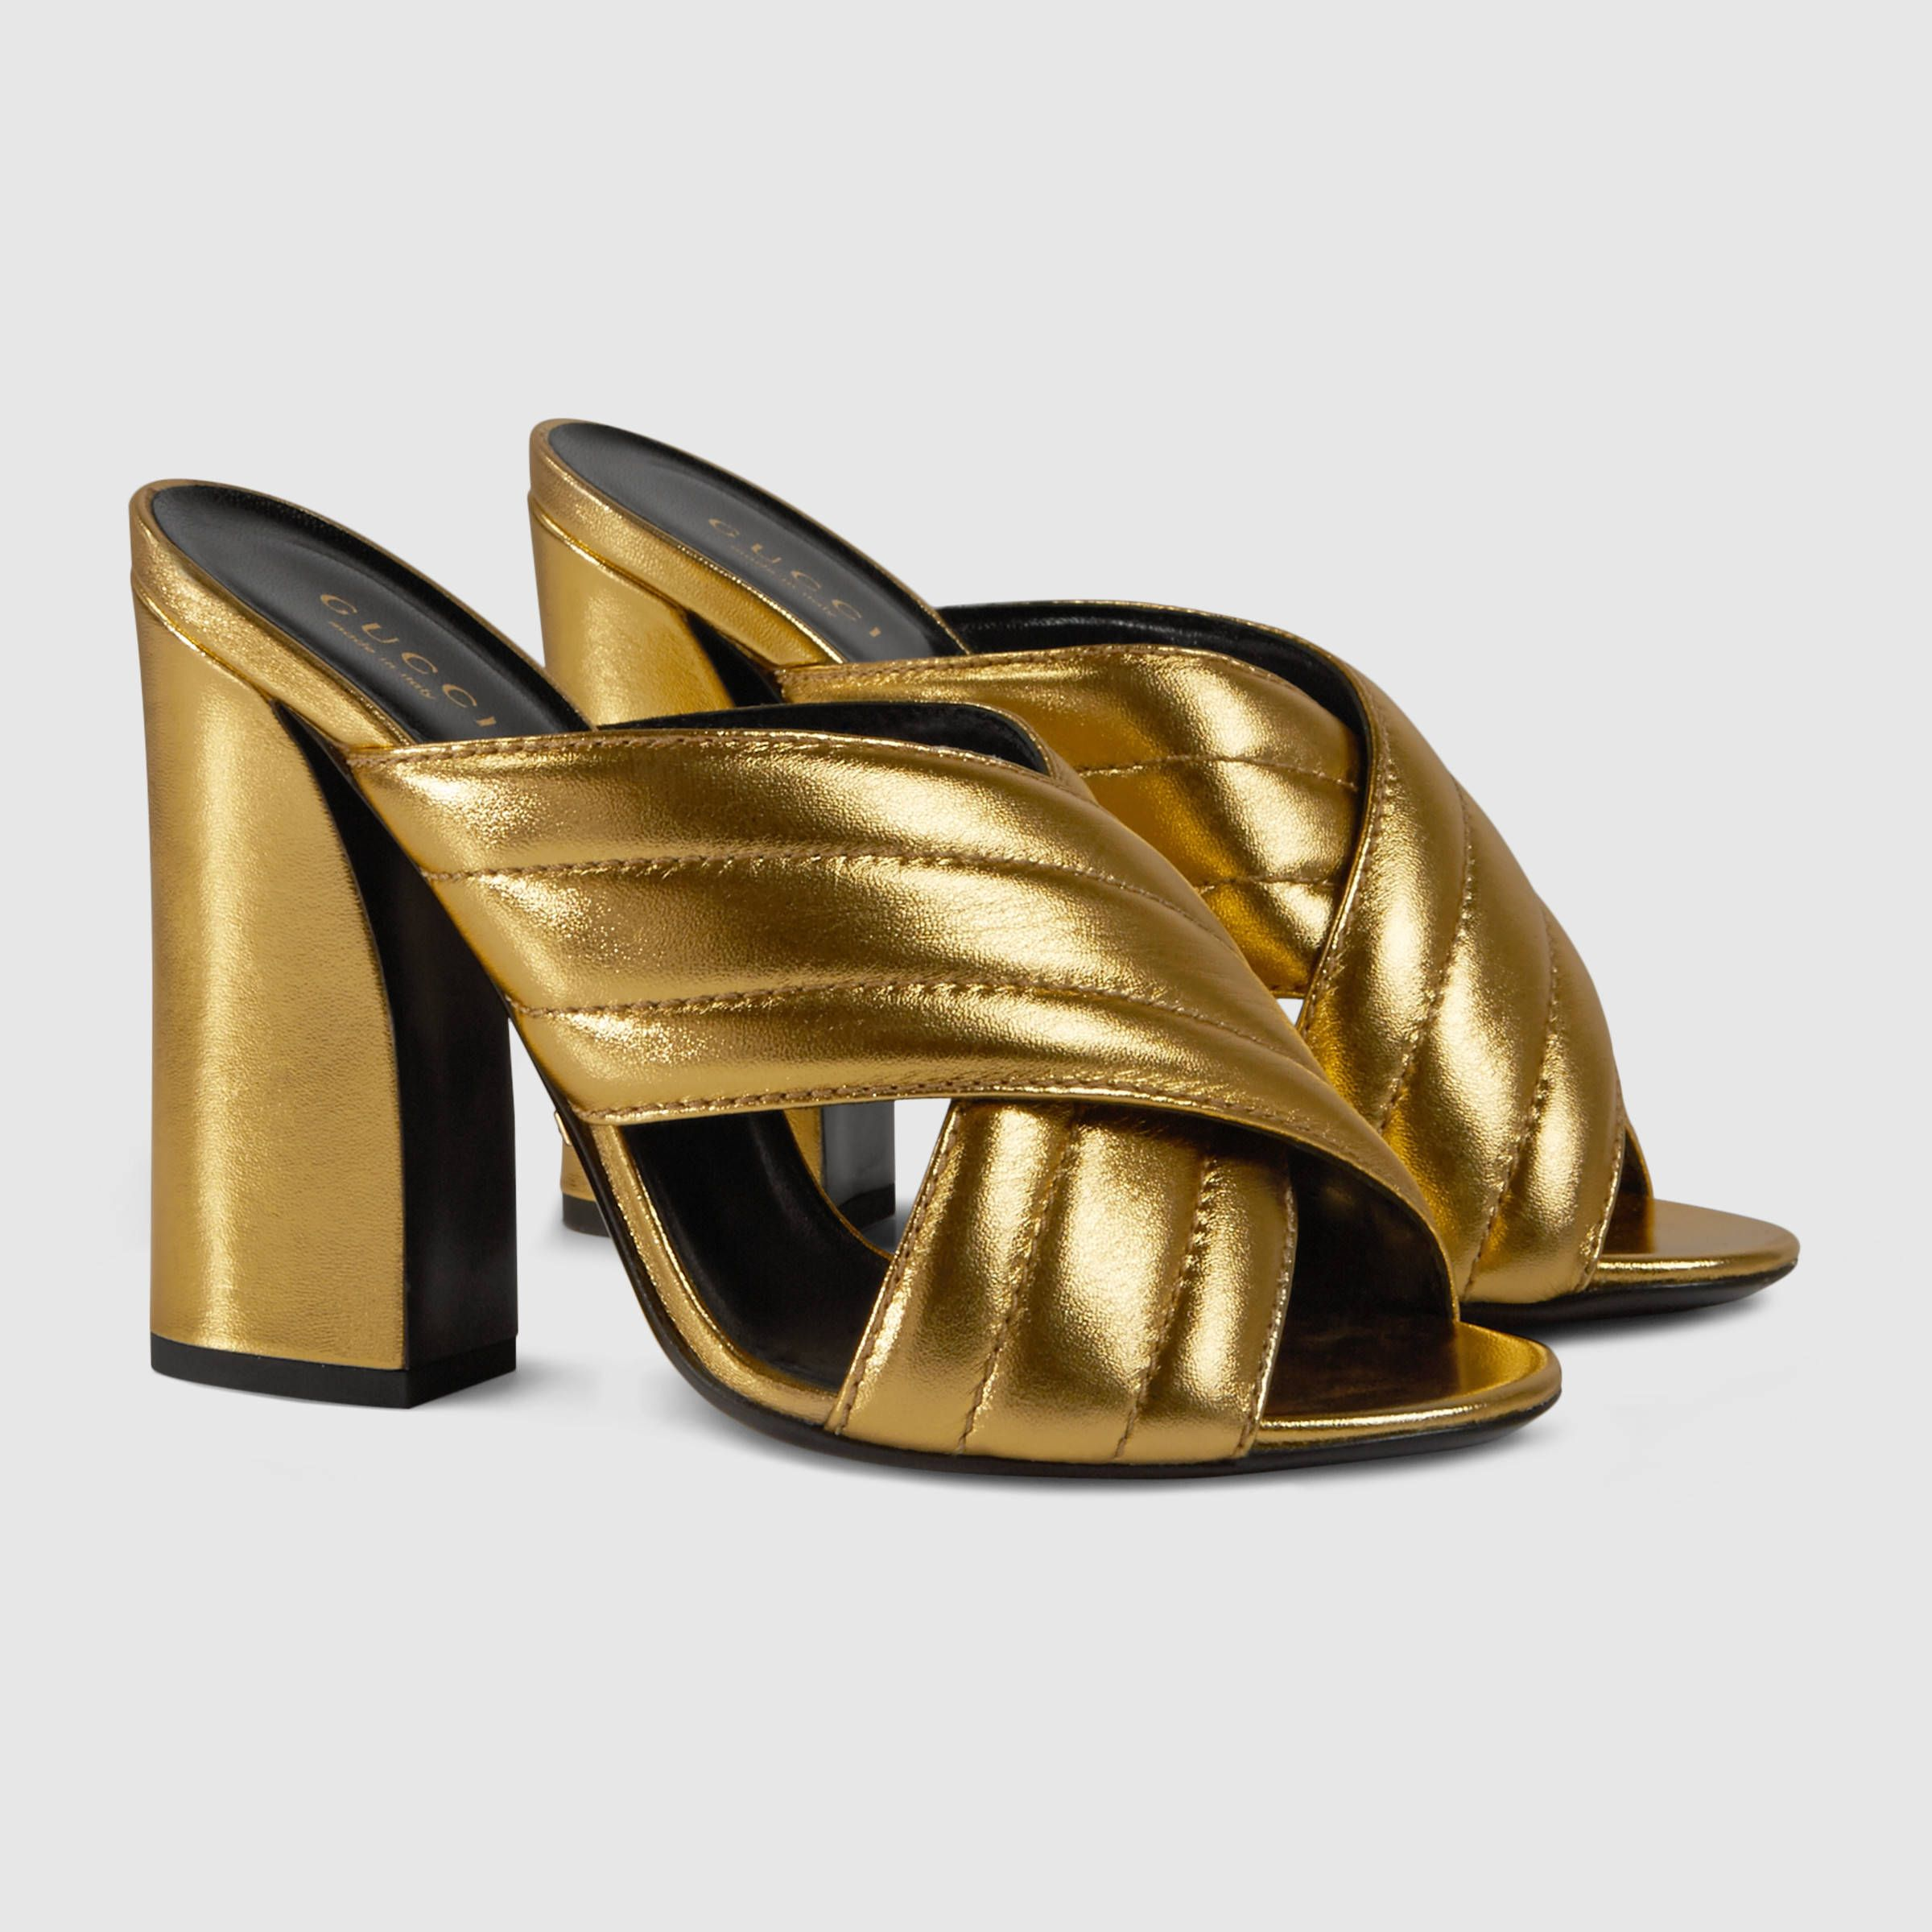 2741be53d9 Gucci Women - Gucci Metallic Gold crossover sandal - $595.00 ...